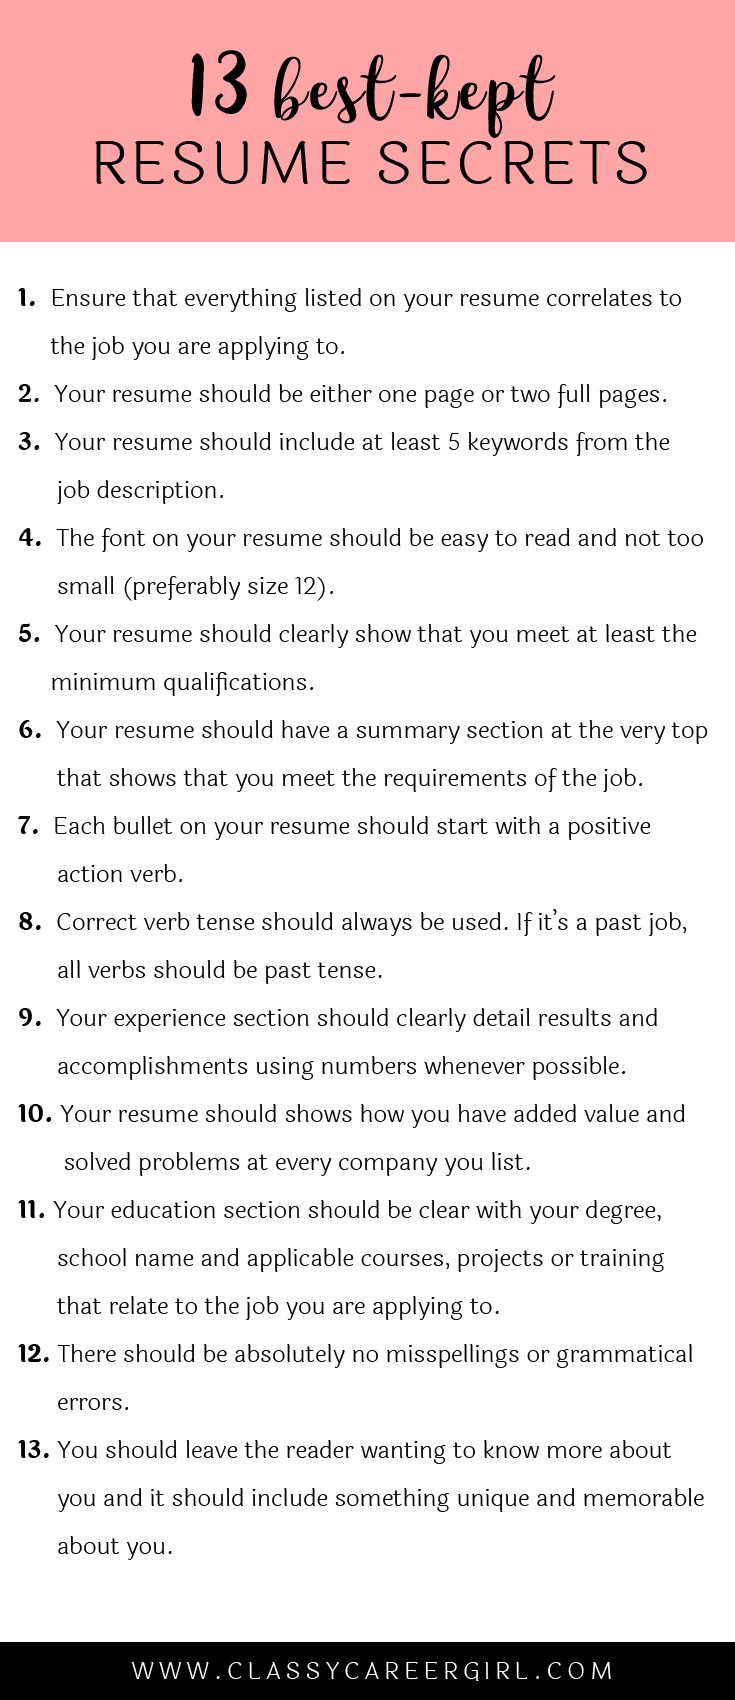 Opposenewapstandardsus  Picturesque  Ideas About Resume On Pinterest  Cv Format Resume Cv And  With Remarkable Some Hiring Managers Will Toss Your Resume Out If You Dont Know These  With Breathtaking Process Improvement Resume Also Highlights On A Resume In Addition Electronic Assembler Resume And Good Descriptive Words For Resume As Well As Data Entry Resumes Additionally Resumes Examples For Students From Pinterestcom With Opposenewapstandardsus  Remarkable  Ideas About Resume On Pinterest  Cv Format Resume Cv And  With Breathtaking Some Hiring Managers Will Toss Your Resume Out If You Dont Know These  And Picturesque Process Improvement Resume Also Highlights On A Resume In Addition Electronic Assembler Resume From Pinterestcom